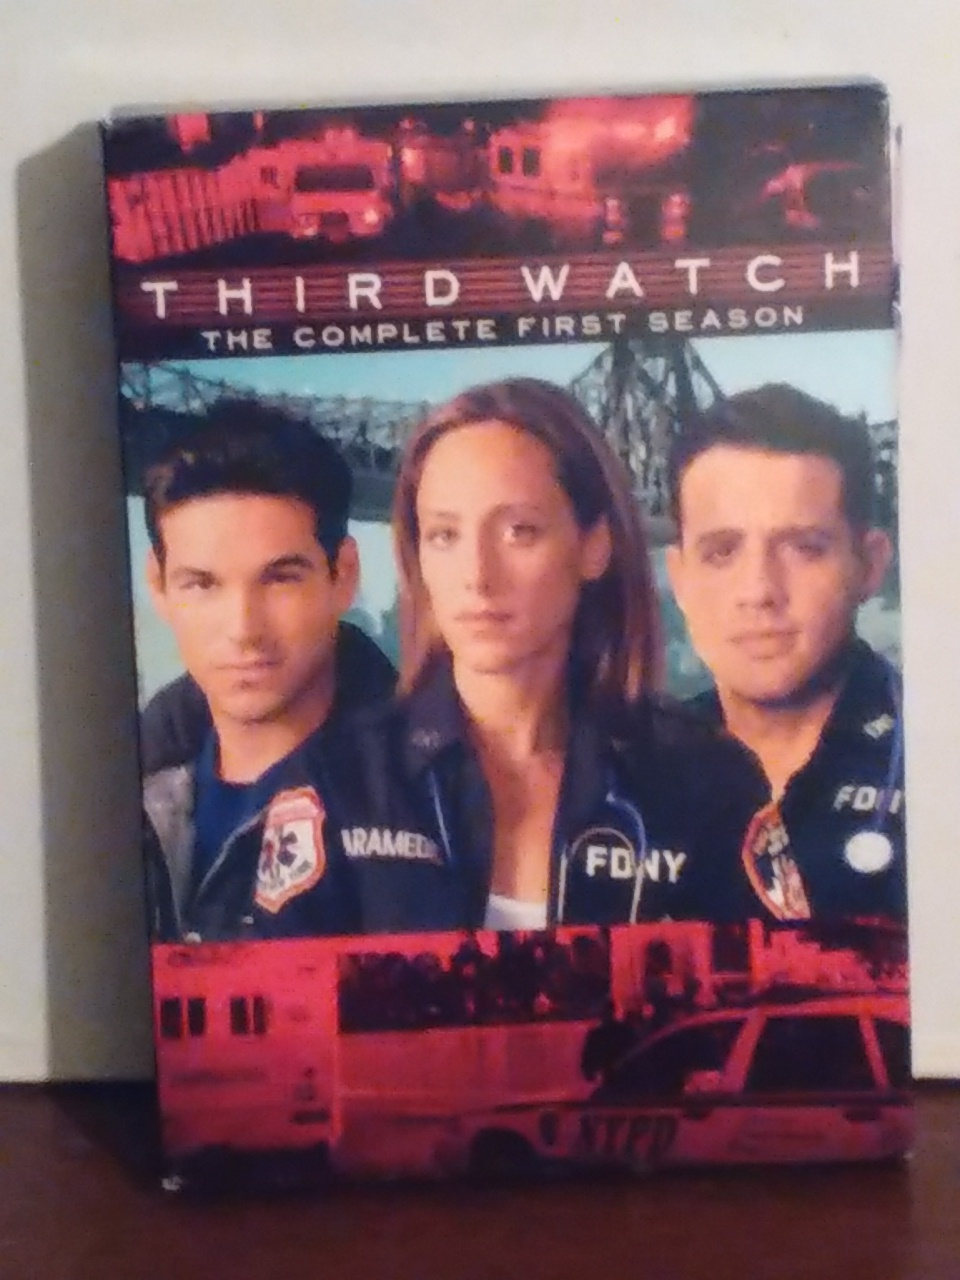 Third Watch the complete first season DVD